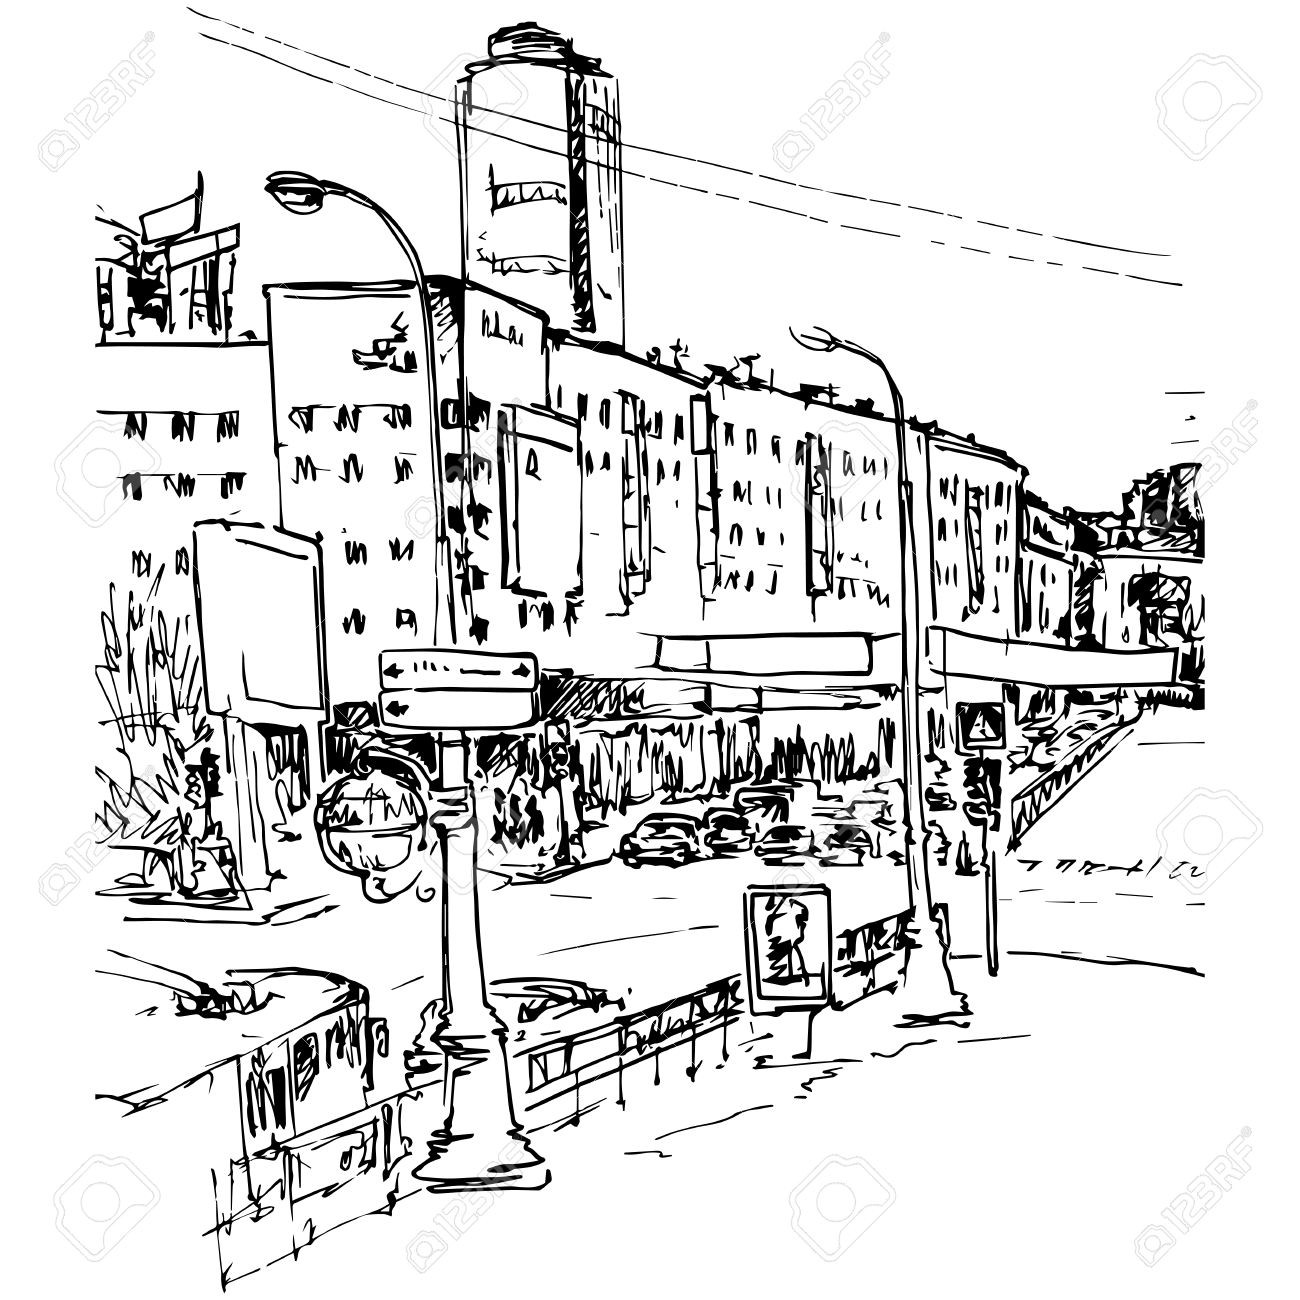 Traffic clipart sketch city. Urban street with buildings